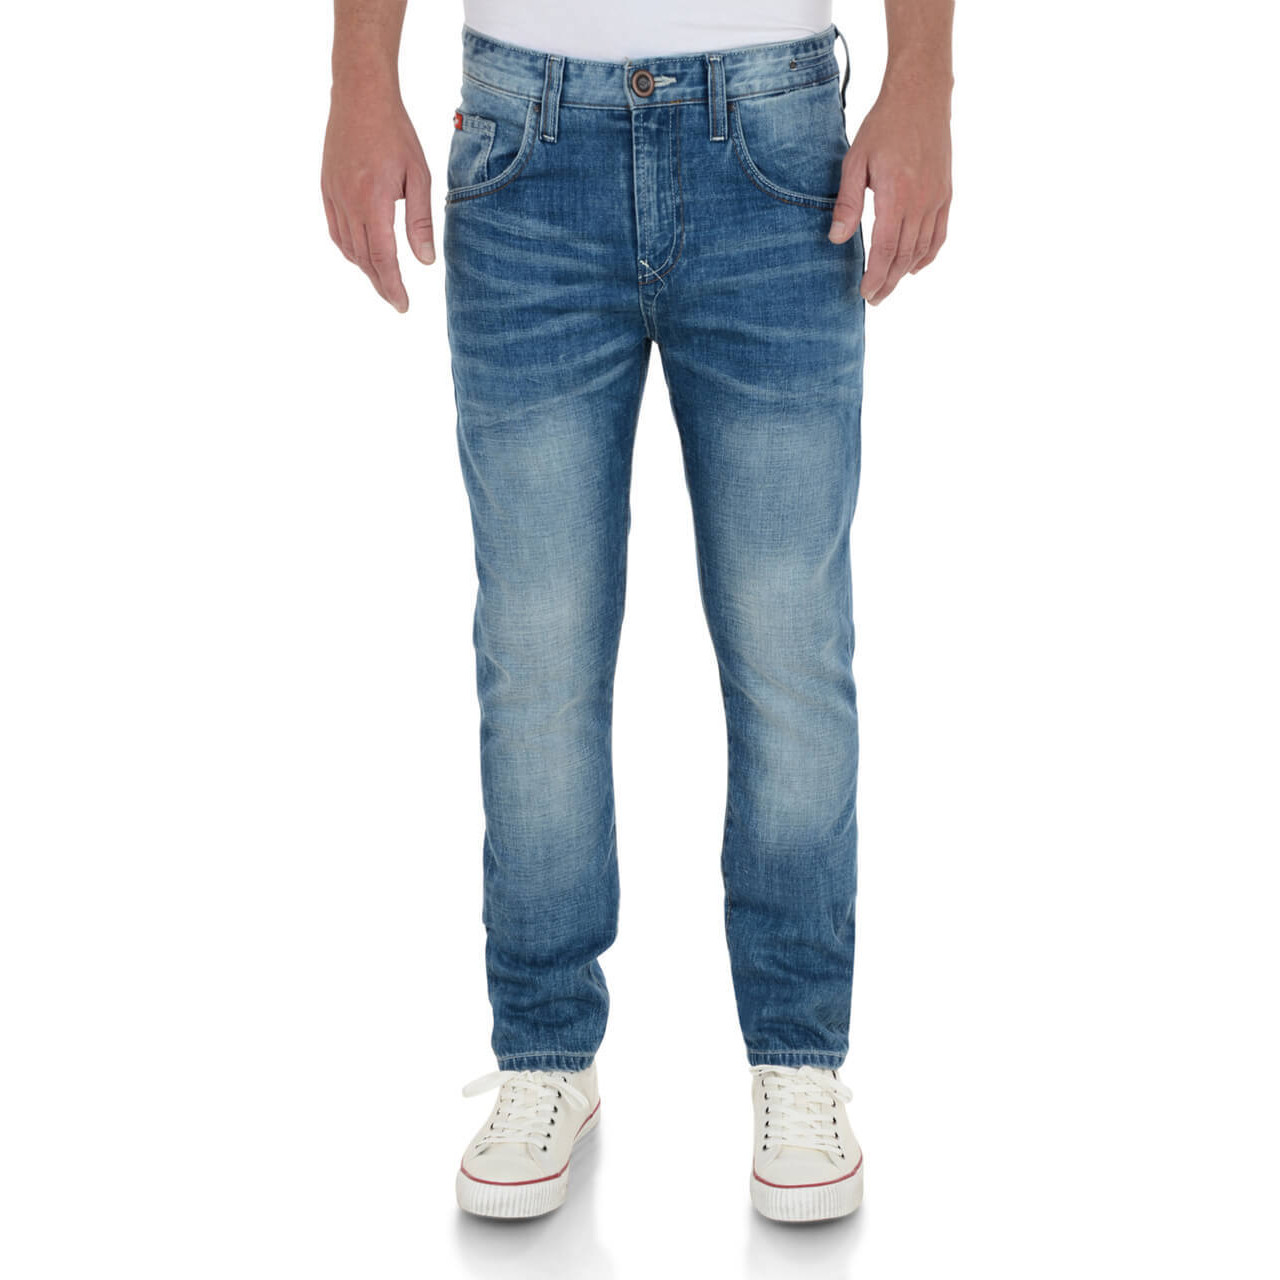 3a08f055 Lee Cooper Tapered Fit Slim Norris Jeans Faded Light Wash Blue Image